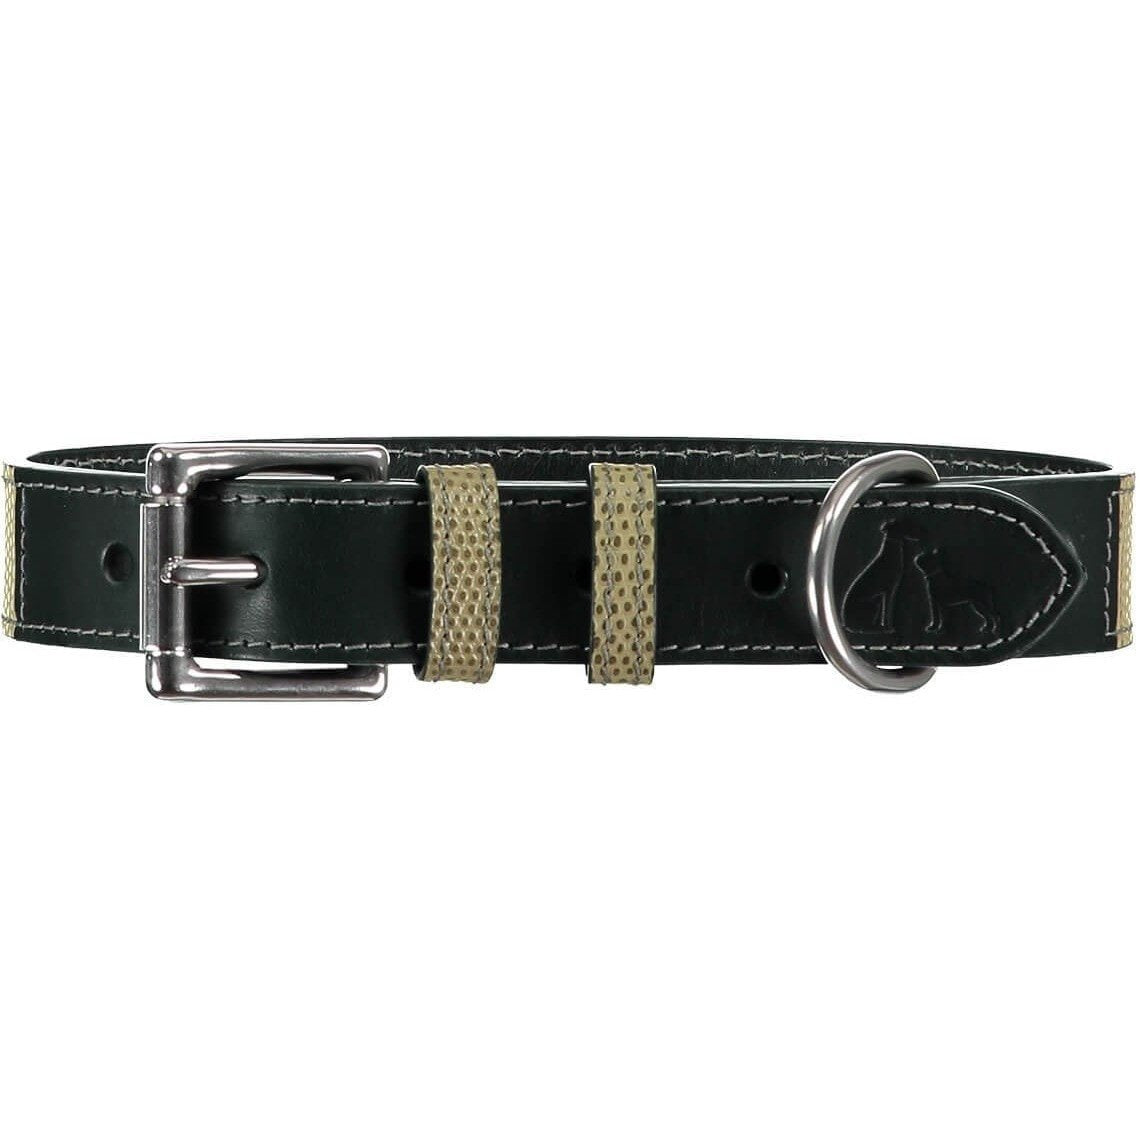 Baker & Bray Dog Apparel X-Small Chelsea Dog Collar by Baker & Bray - Musgo/Green -XS PetsOwnUs - Pets Own Us